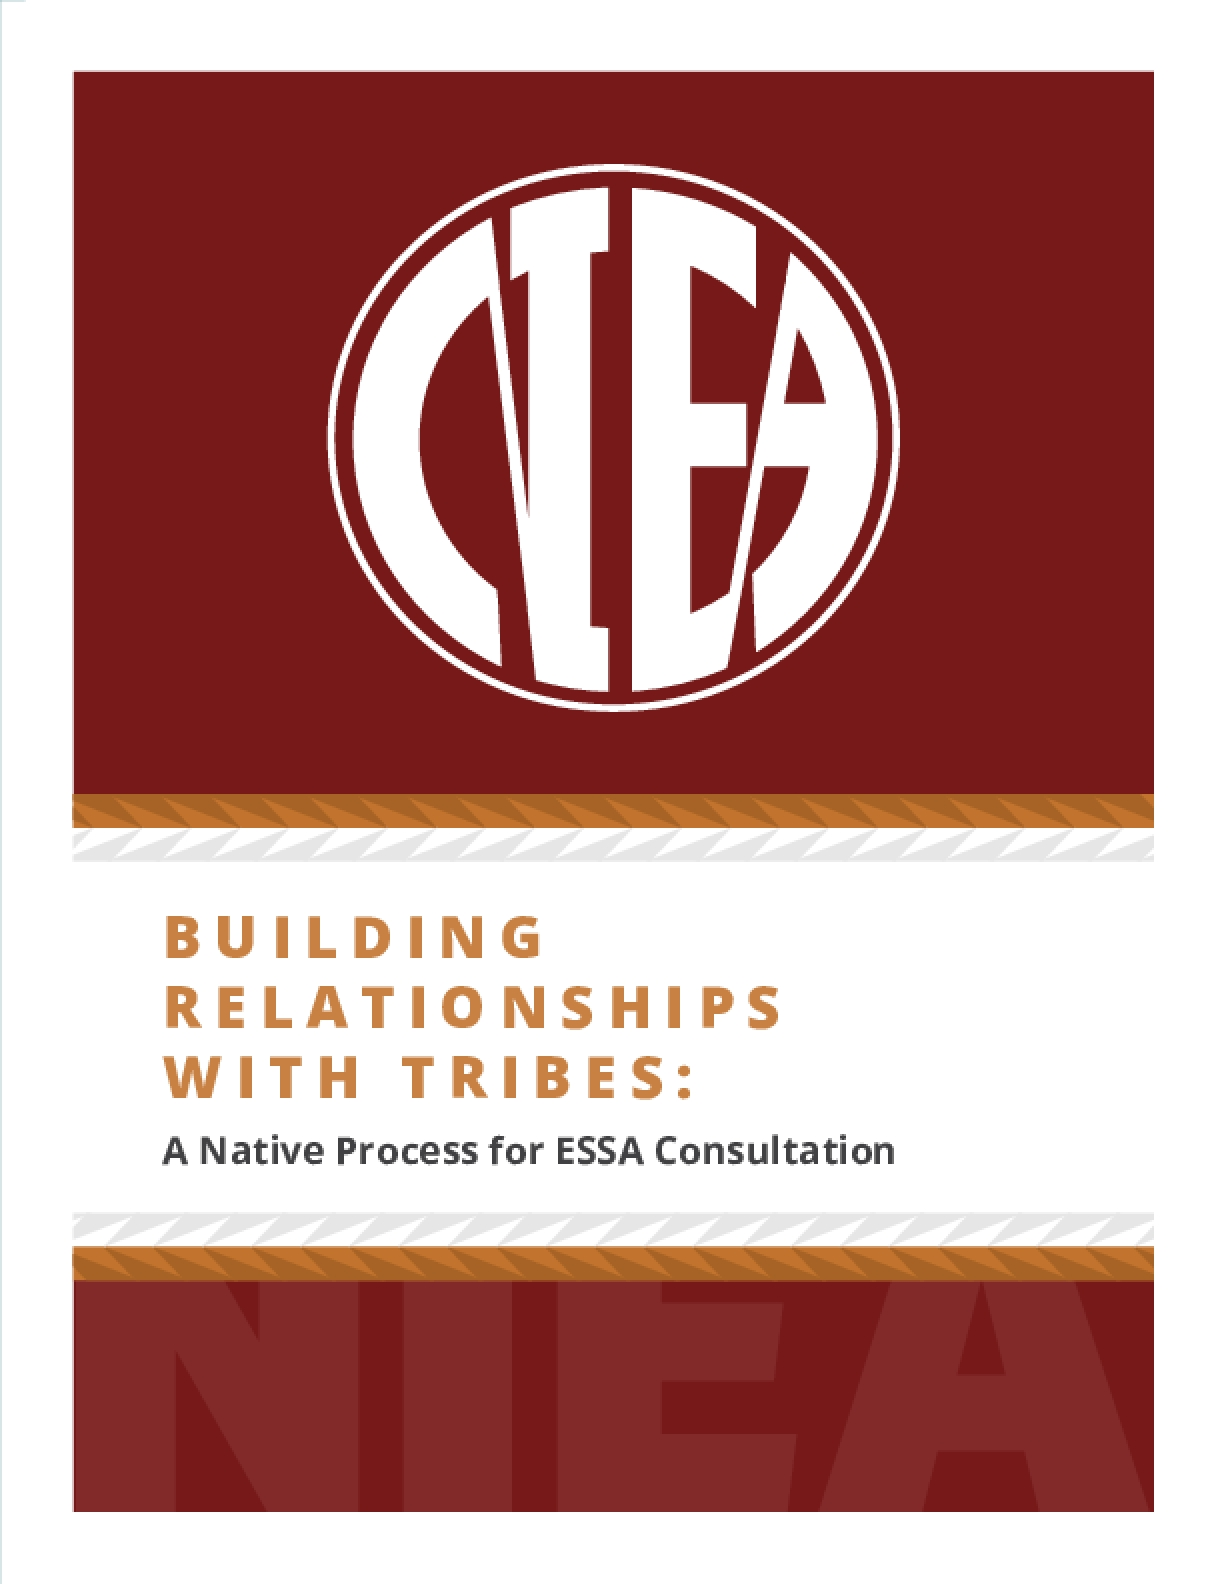 Building Relationship with Tribes: A Native Process for ESSA Consultation